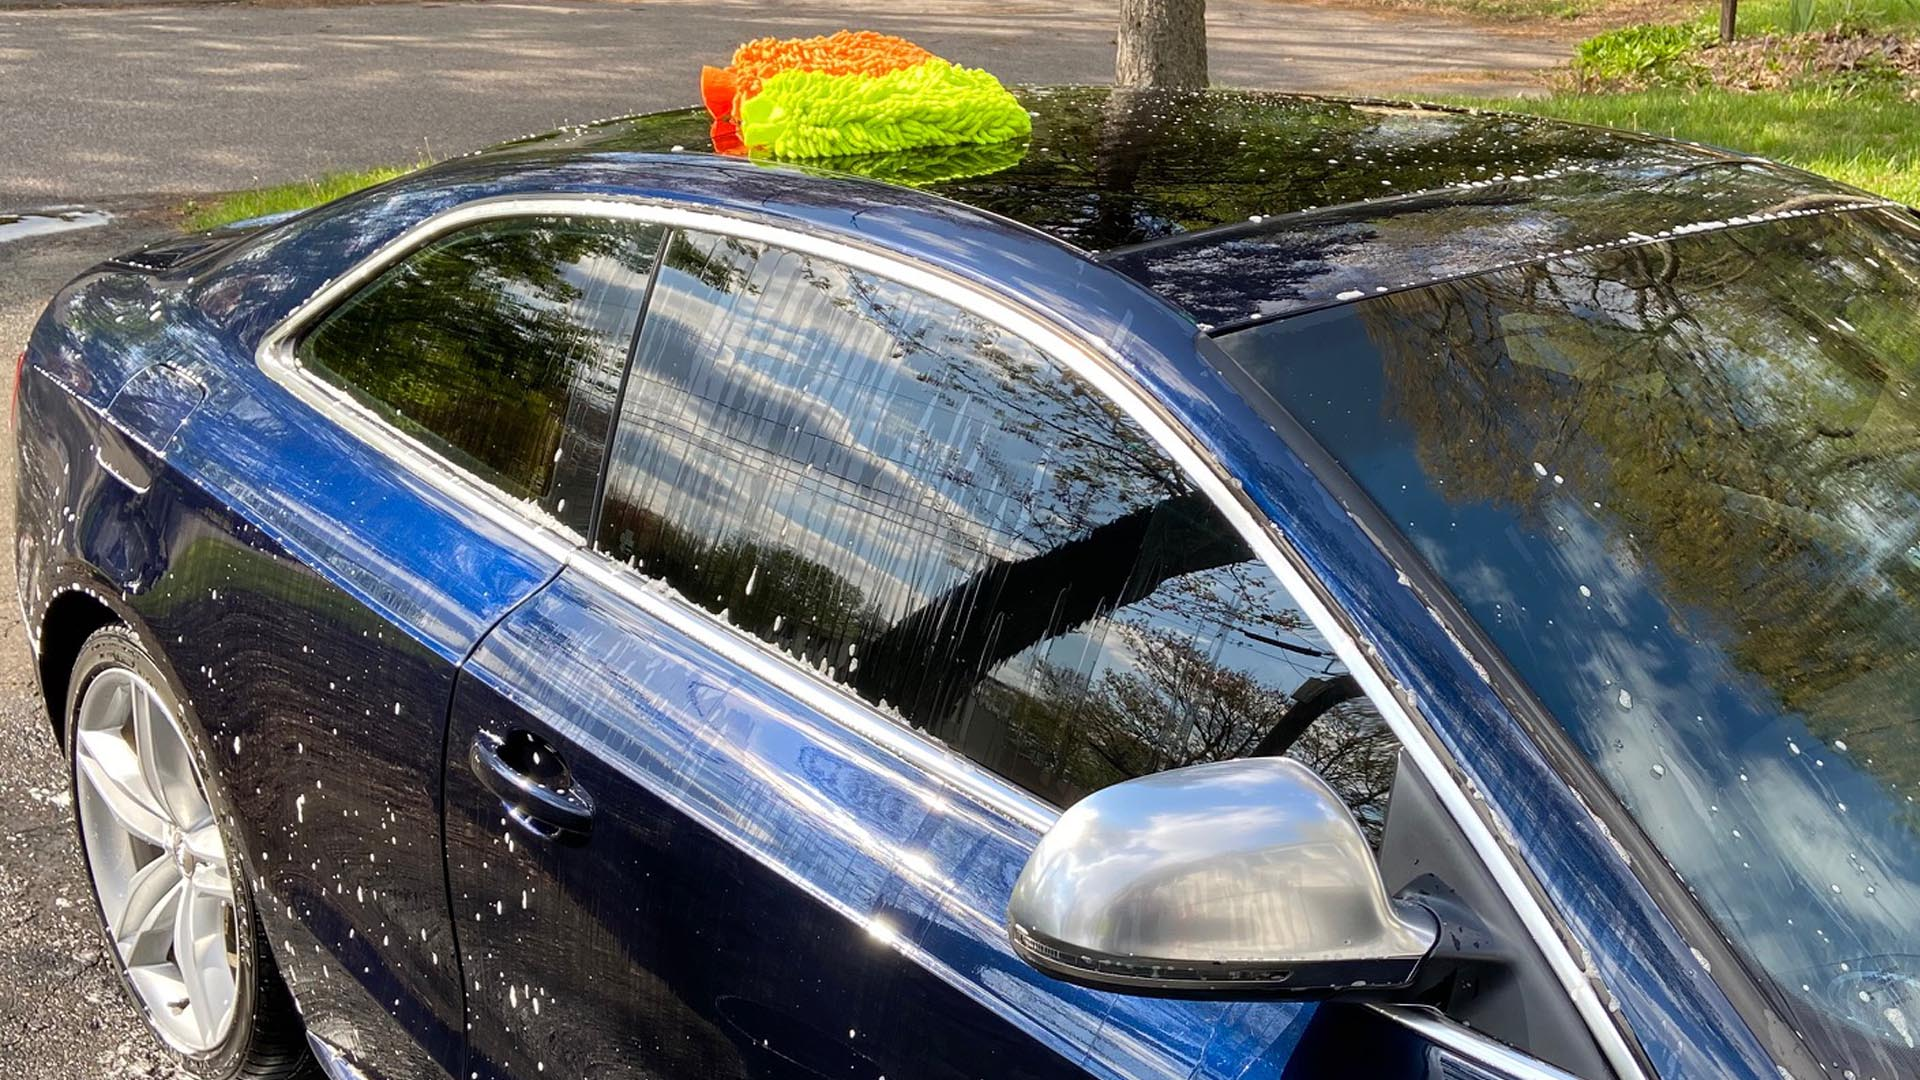 How To Safely Wash Your Car Without A Pressure Washer Using The 'Two Bucket Method'